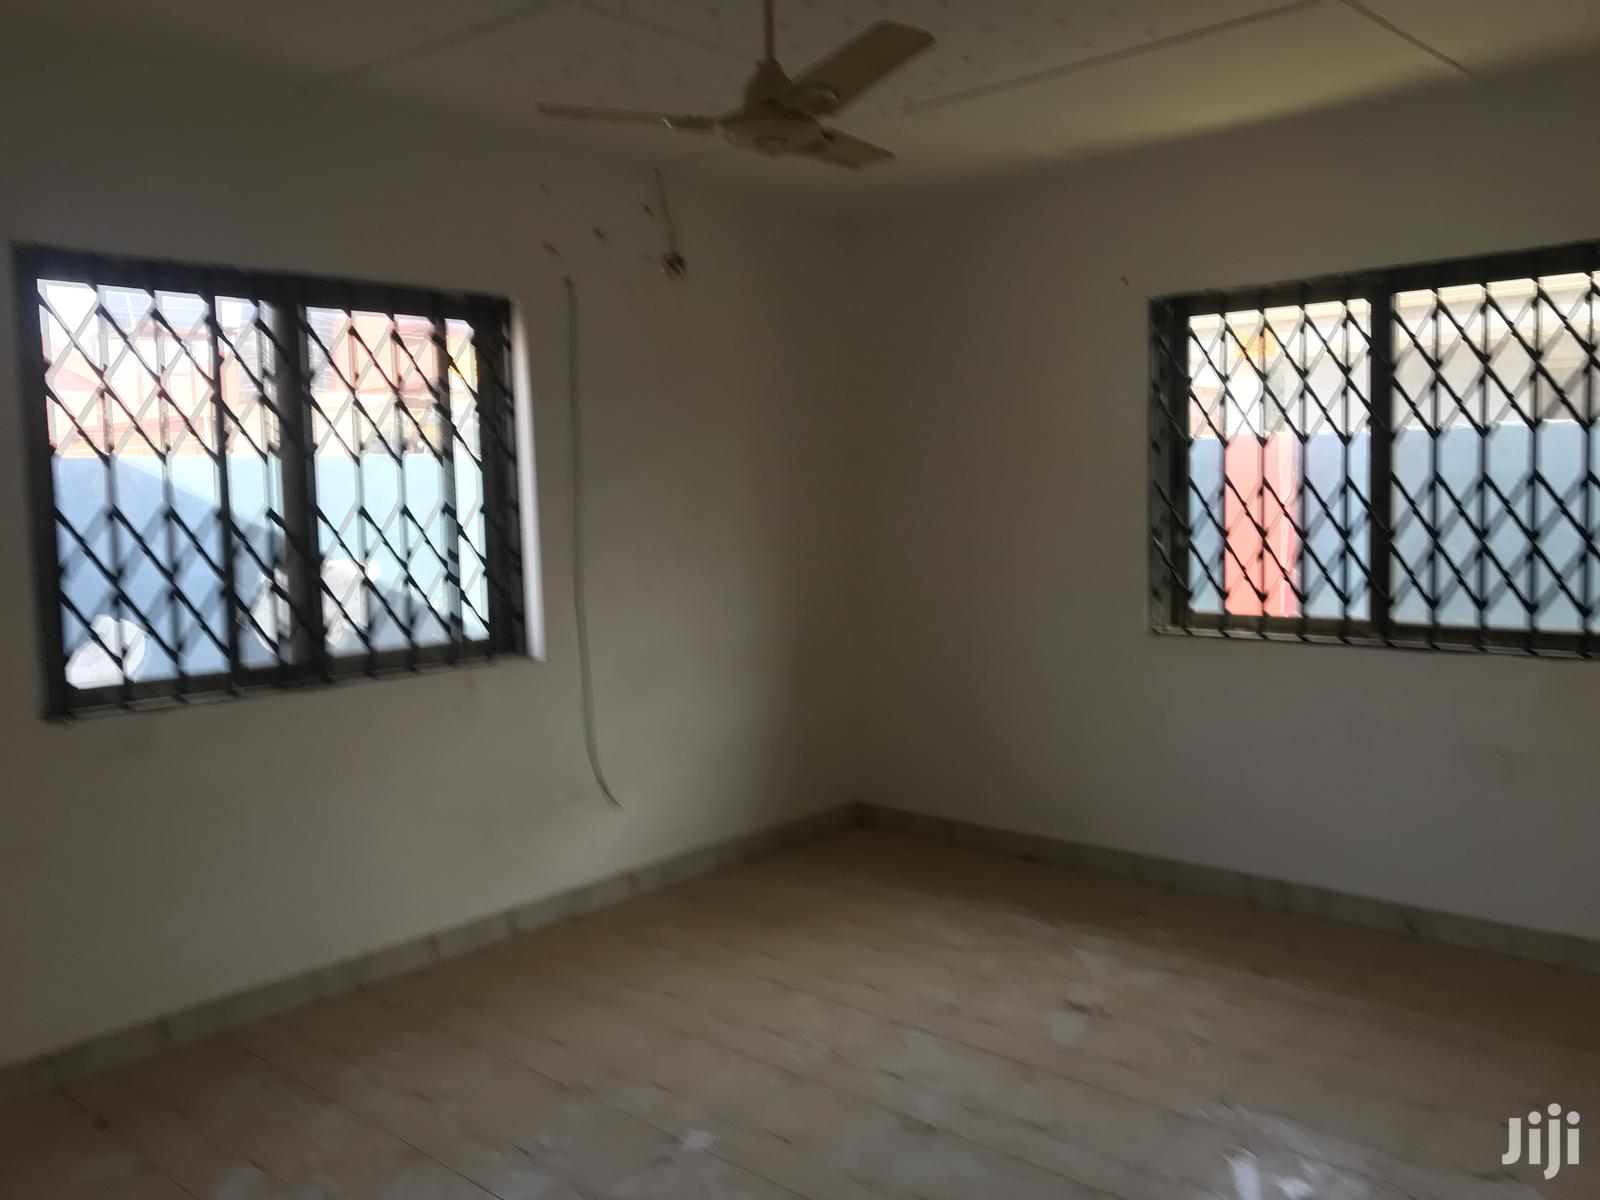 Executive 3 Bedroom House For Rent At East Legon Hills | Houses & Apartments For Rent for sale in East Legon, Greater Accra, Ghana